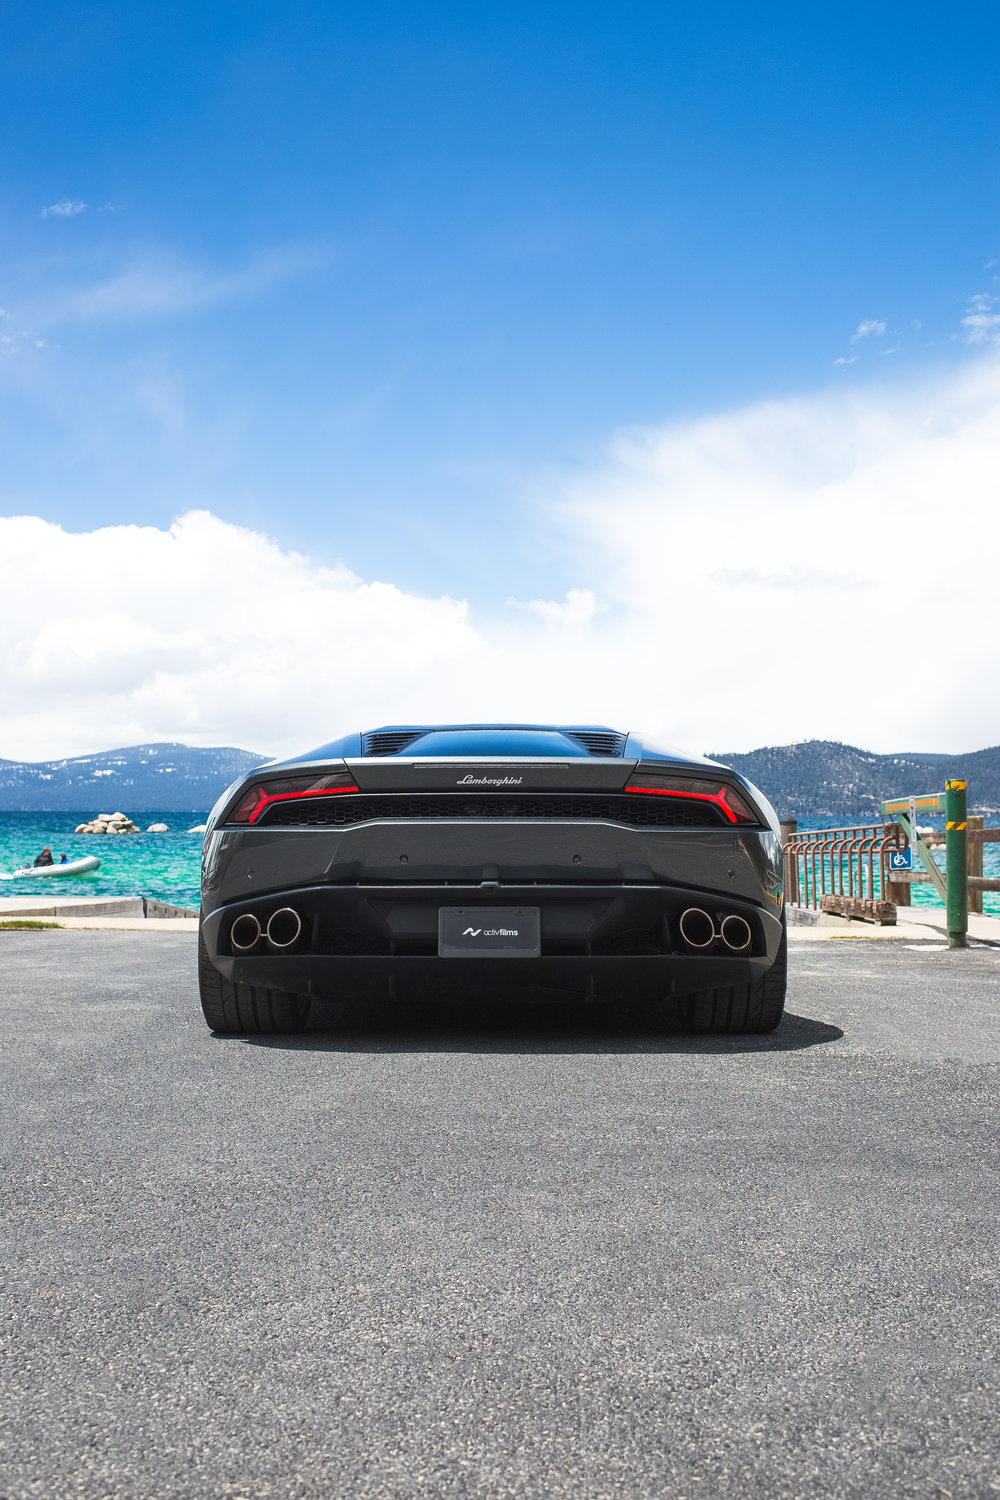 Stay_Driven_Huracan_Tahoe-1-5.jpg